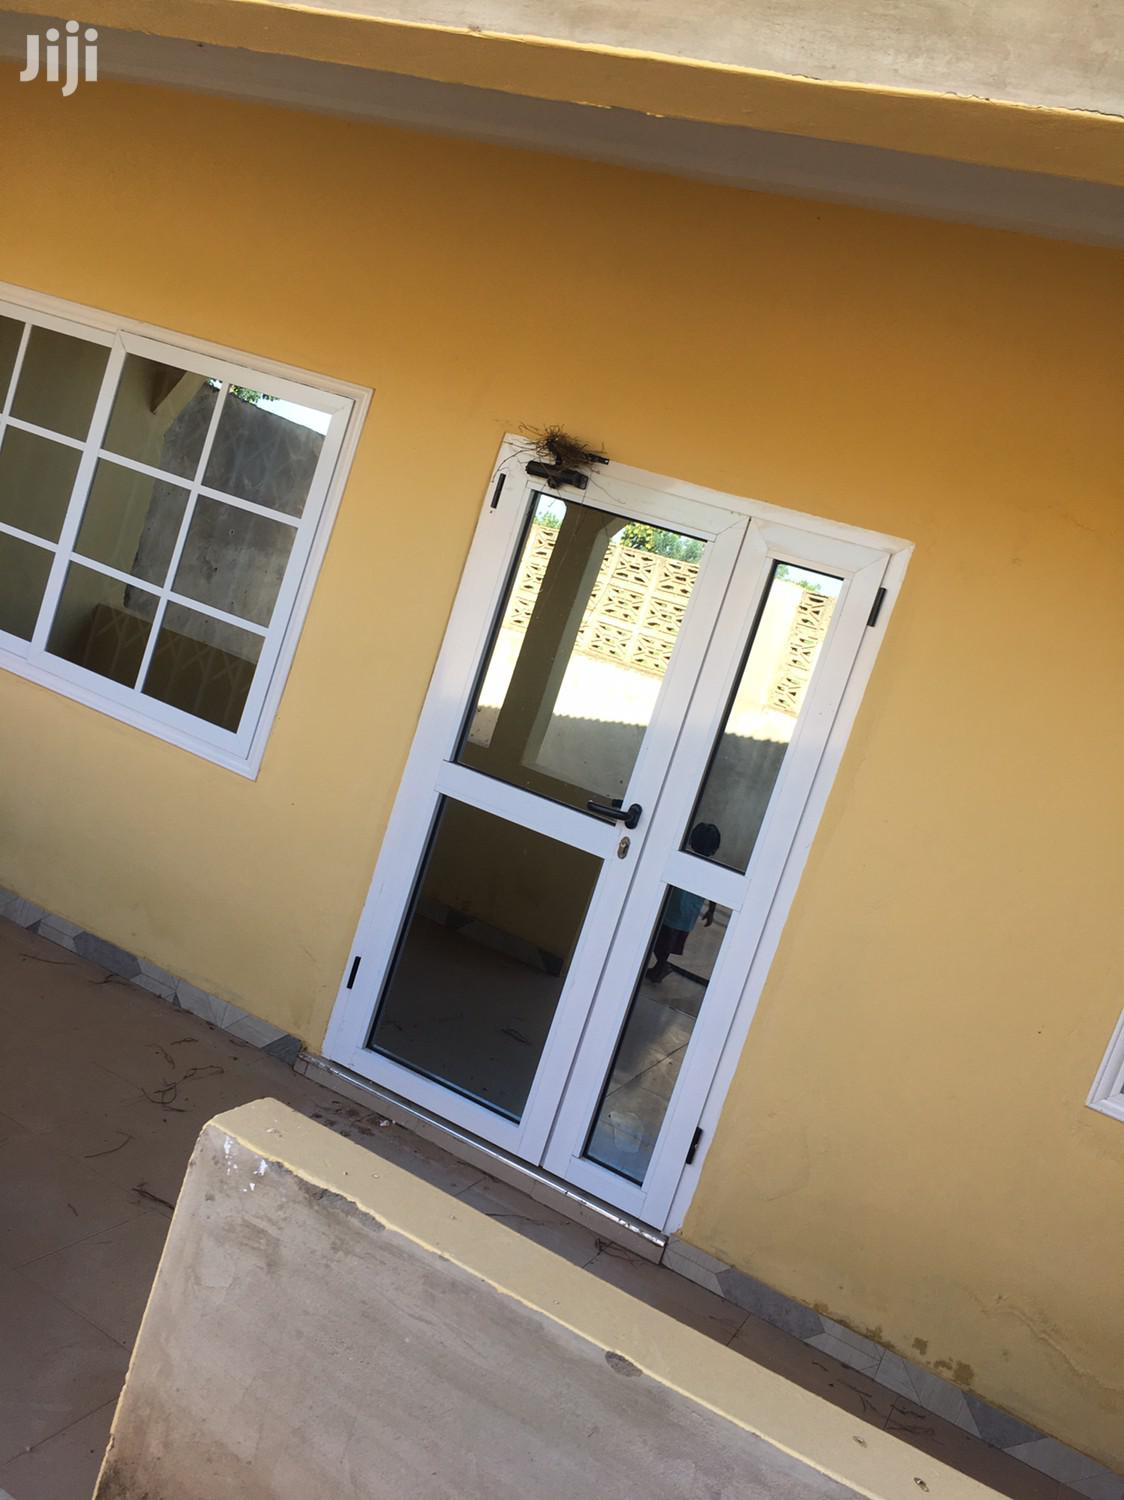 A Two Bedroom House for Renting in Tamale Call Me | Houses & Apartments For Rent for sale in Tamale Municipal, Northern Region, Ghana